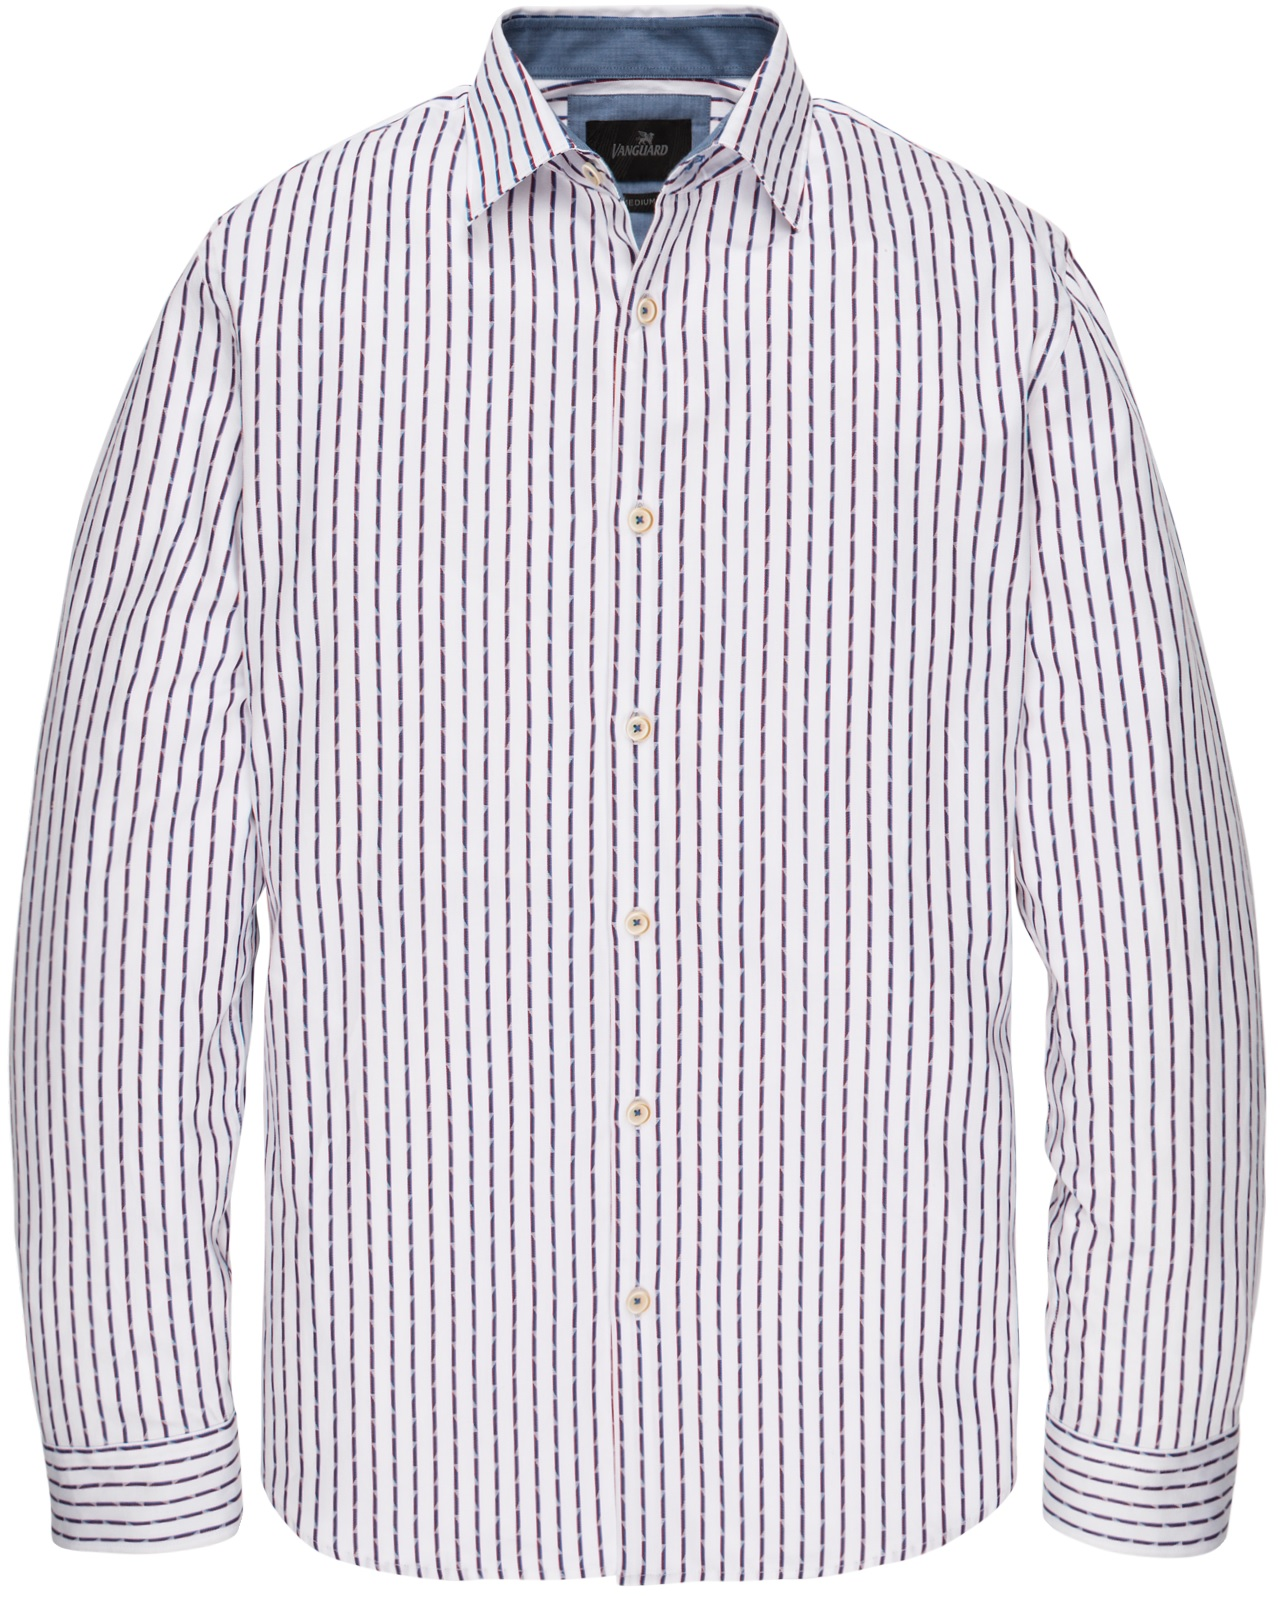 Vanguard Shirt stripe with VSI201210-7003